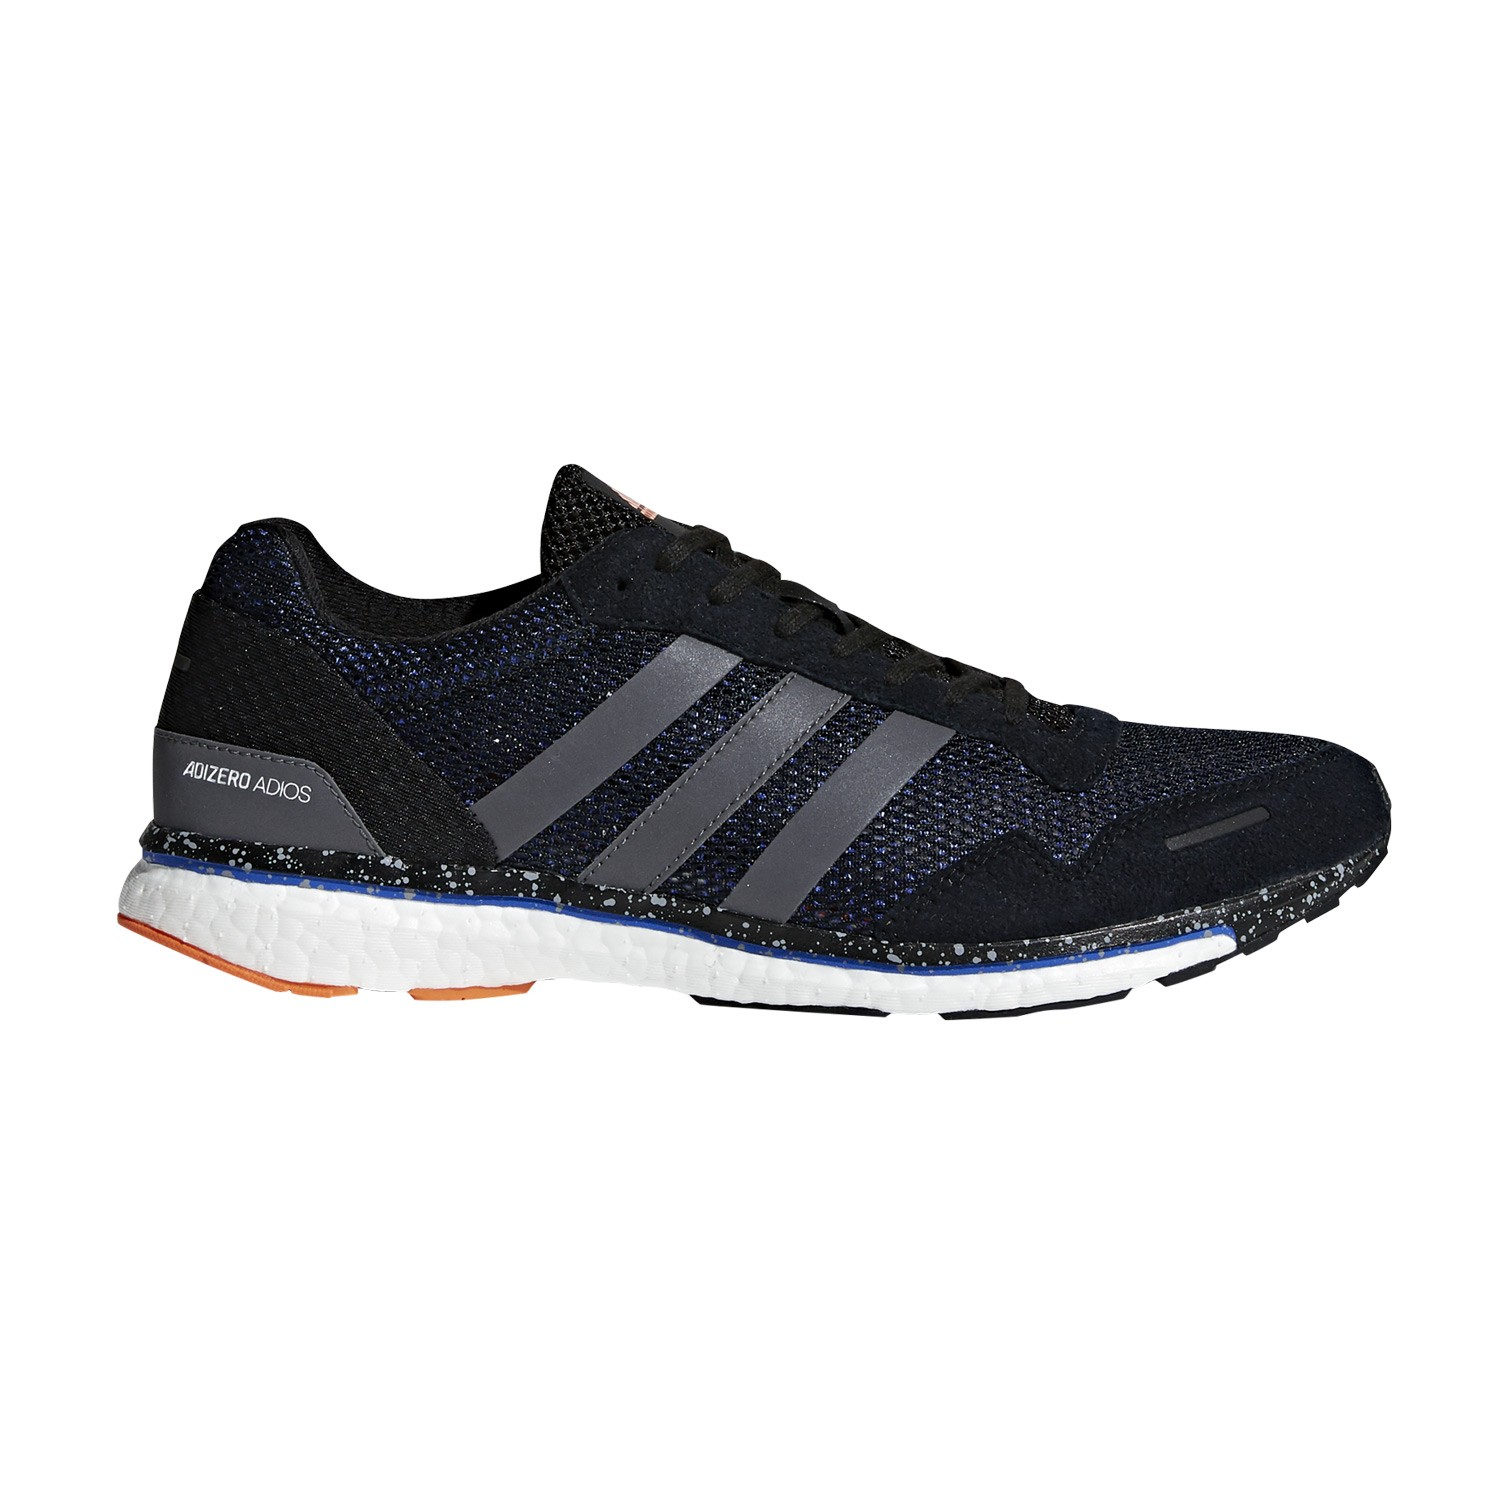 Adidas Men's Adizero Adios 3 Running Shoe